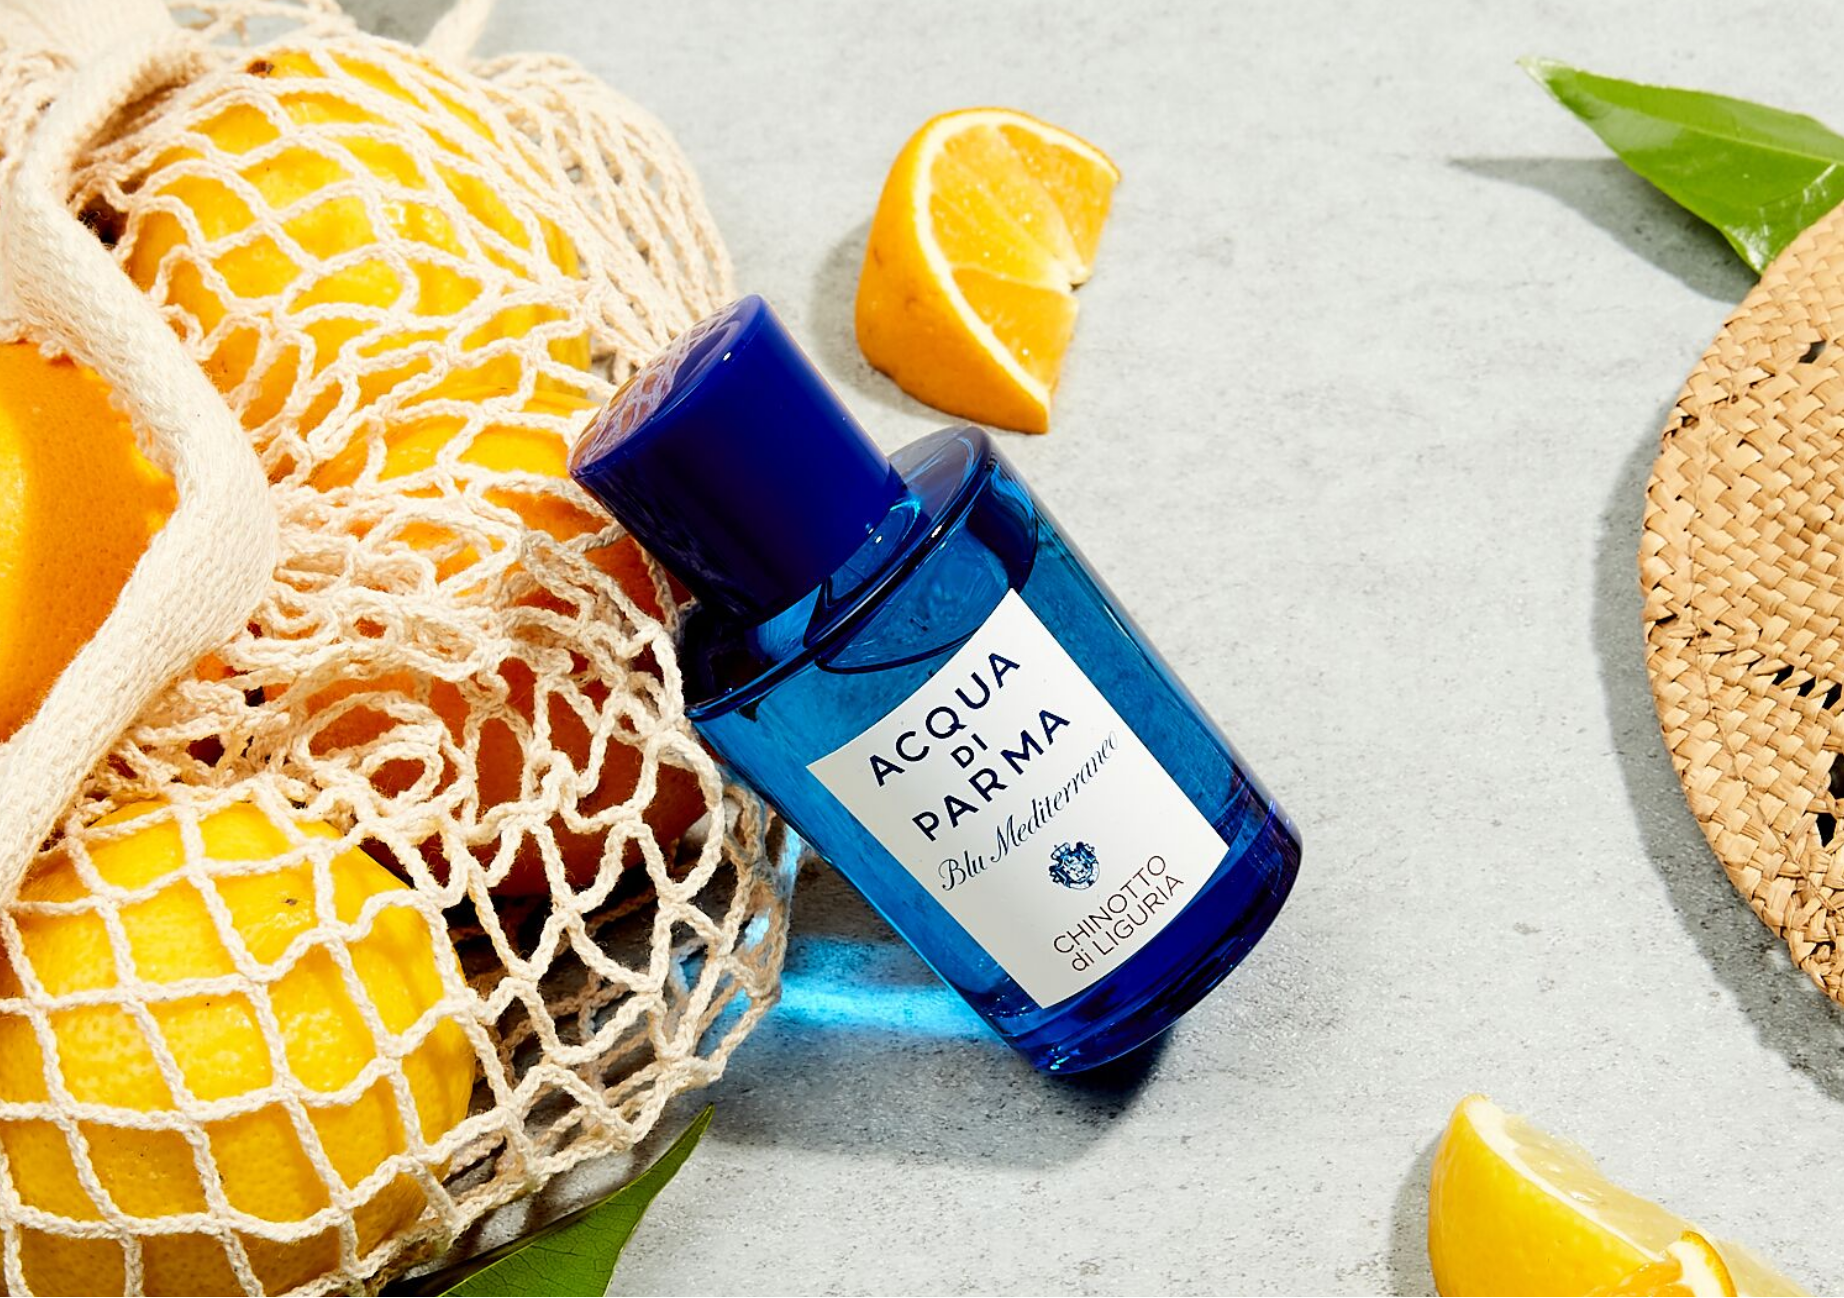 September Fragrance of the Month: Chinotto di Liguria by Acqua di Parma